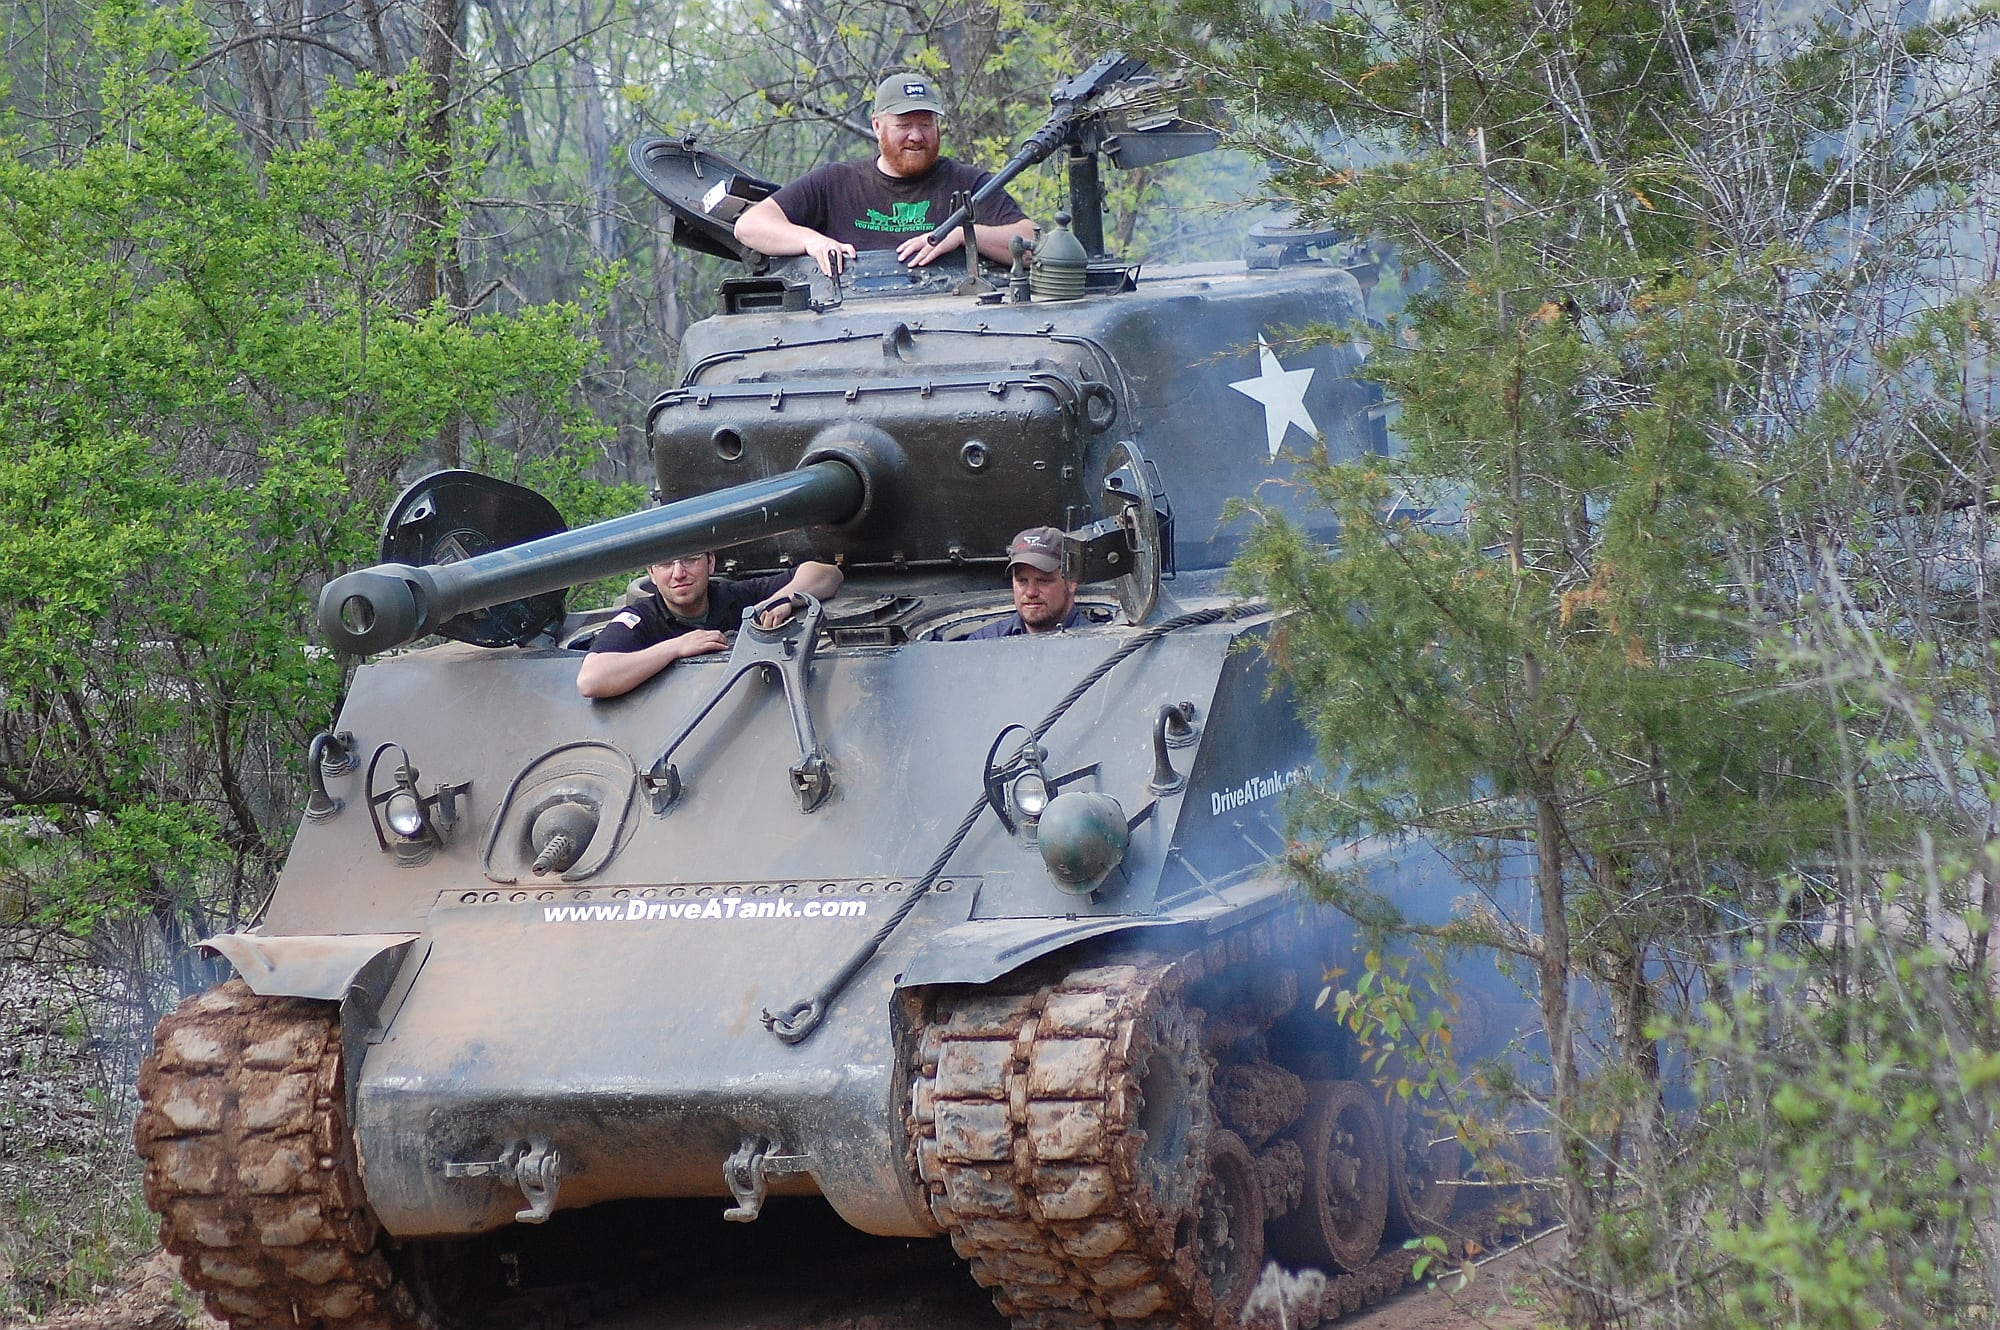 We went to Minnesota and drove some tanks